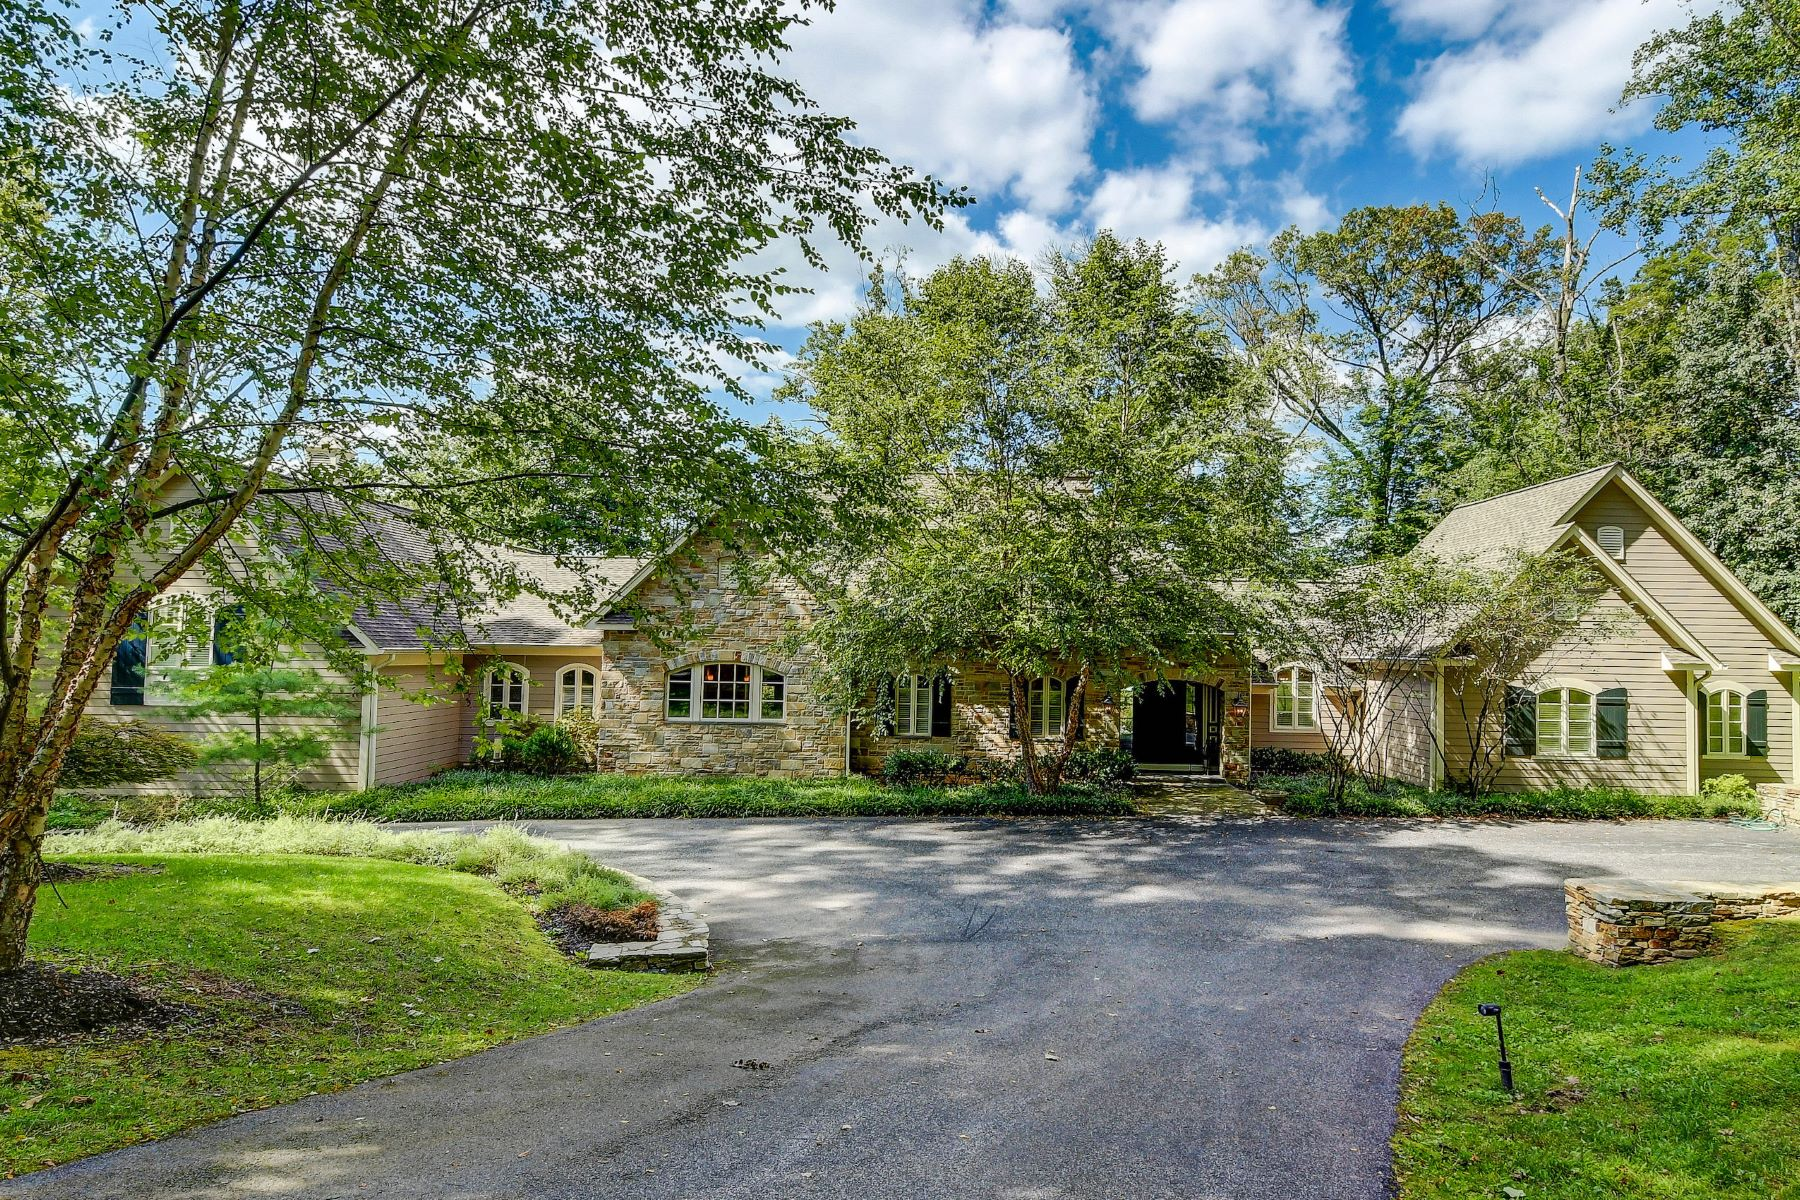 Single Family Homes for Sale at 28 Caveswood Lane Owings Mills, Maryland 21117 United States